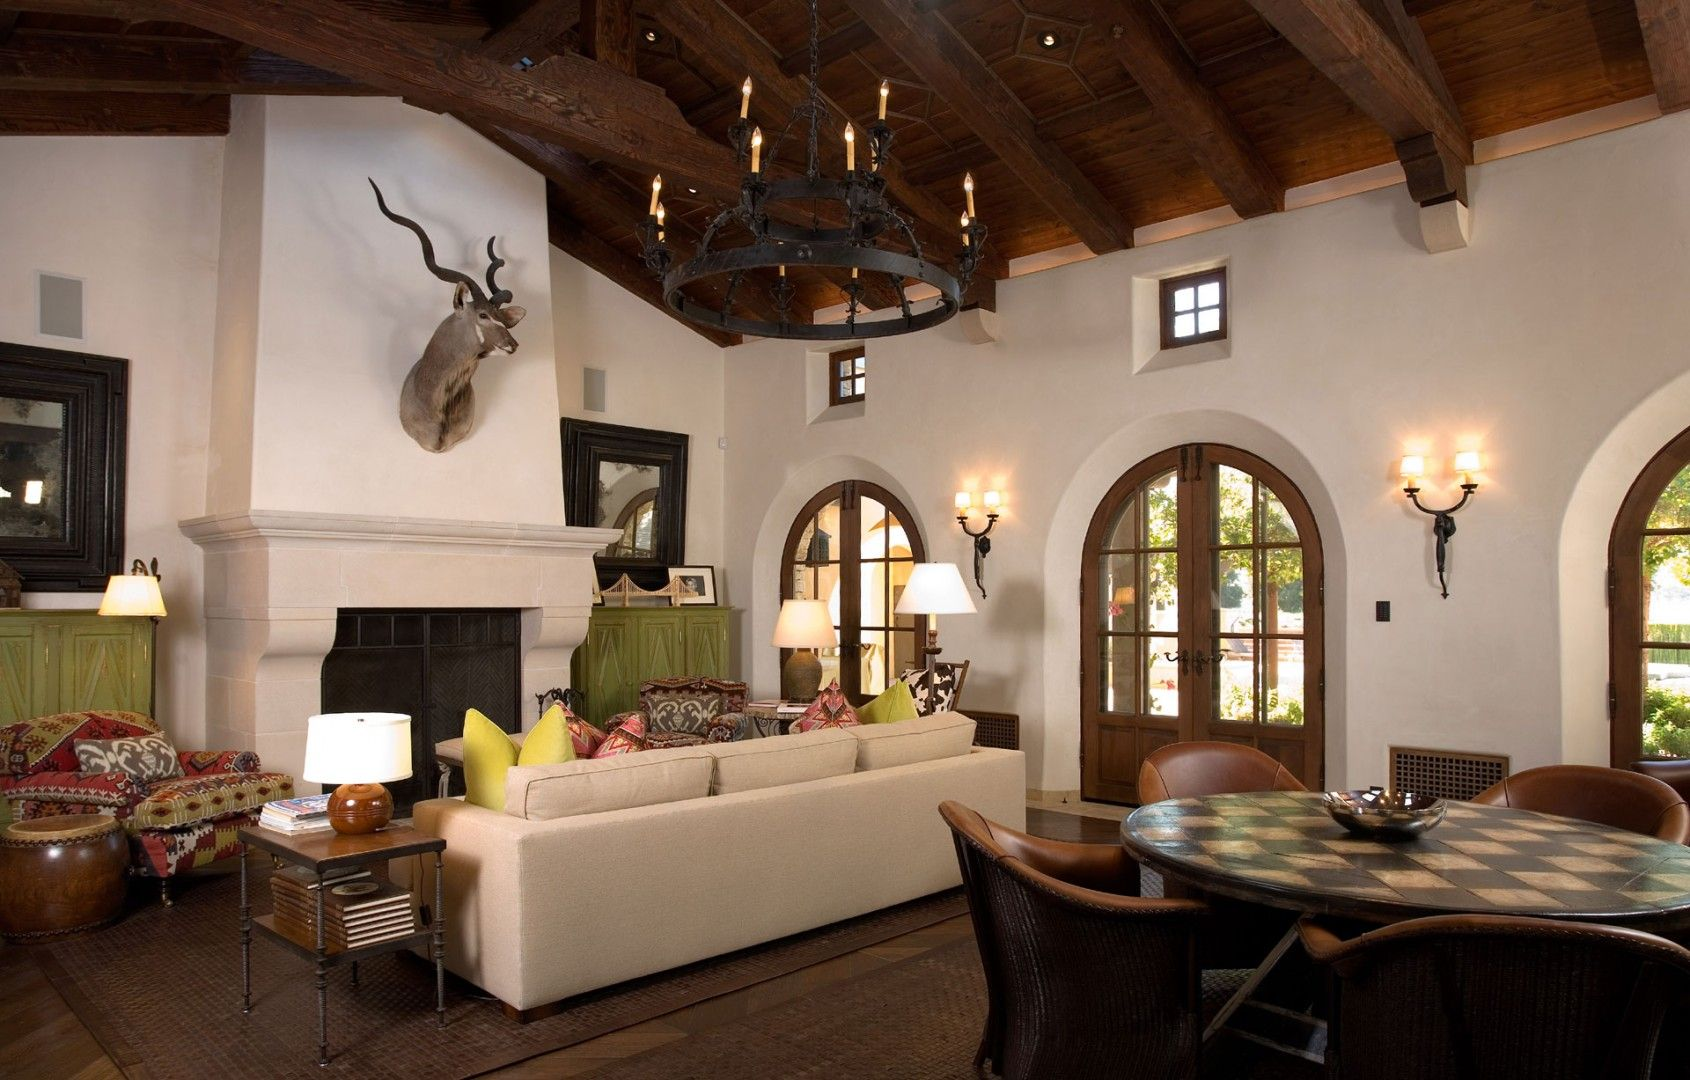 Spanish Colonial Living Room Home Design Interior 2015 Dream House Living Room Pinterest